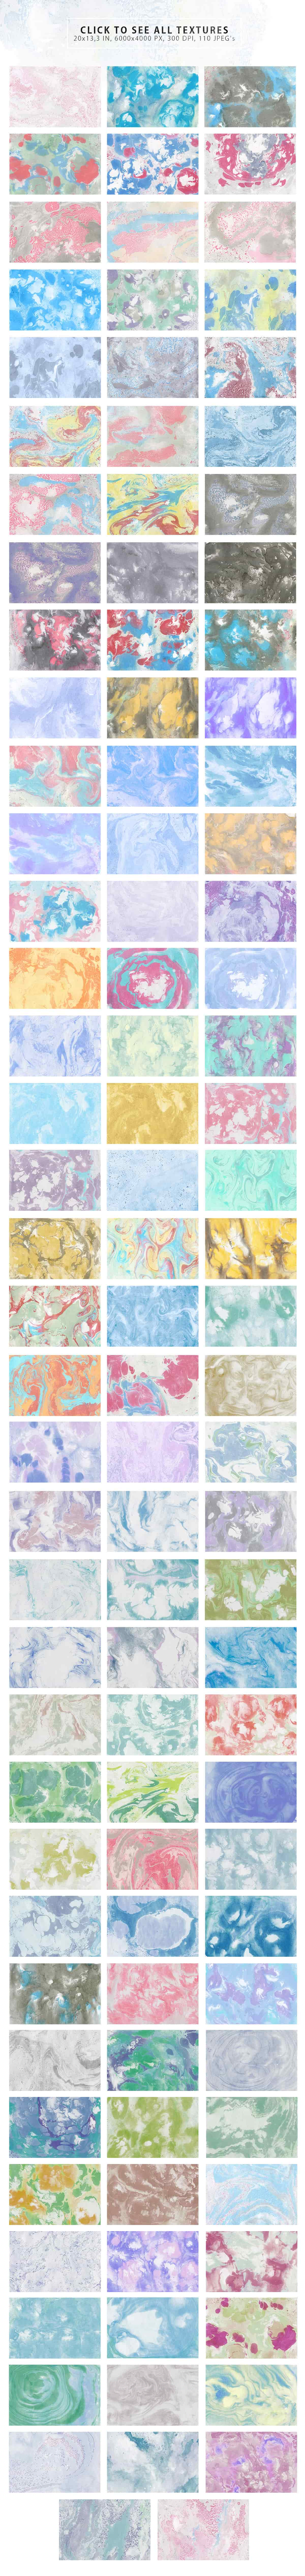 Ink&Marble Backgrounds & Textures Bundle: 900+ IMAGES - $18 Only - Marble Ink Textures prev2 min